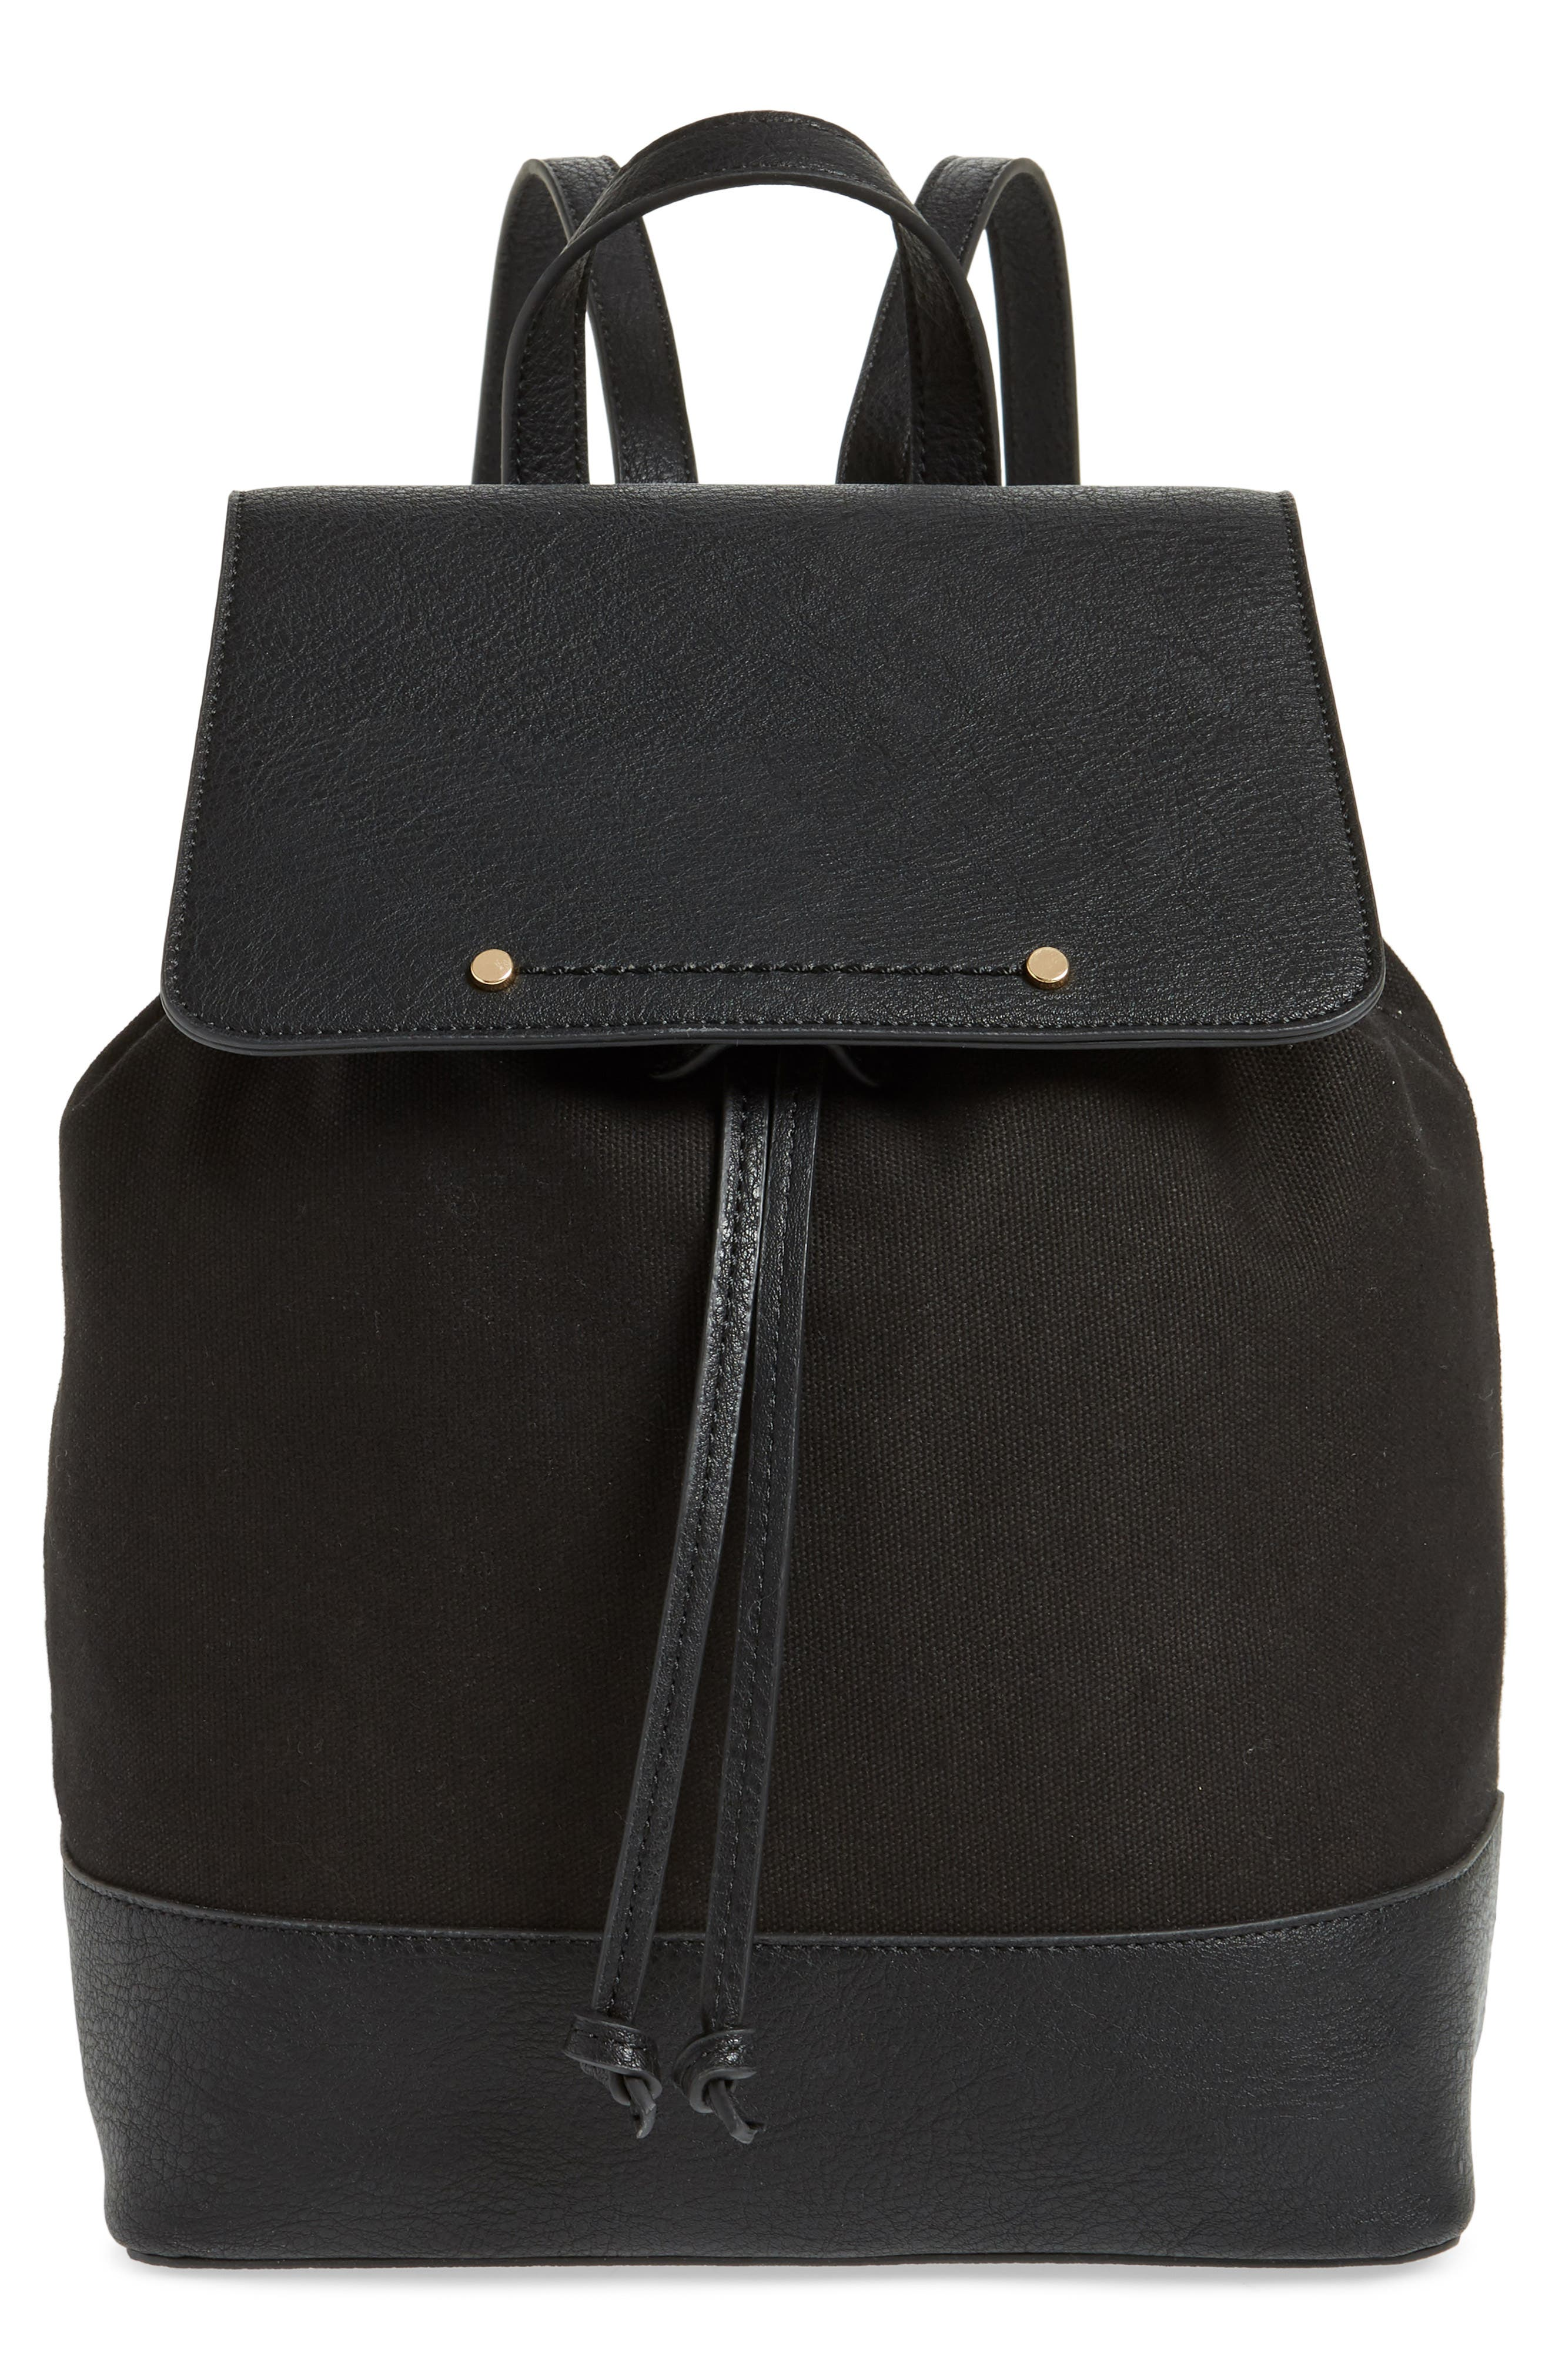 Canvas & Faux Leather Backpack,                             Main thumbnail 1, color,                             Black